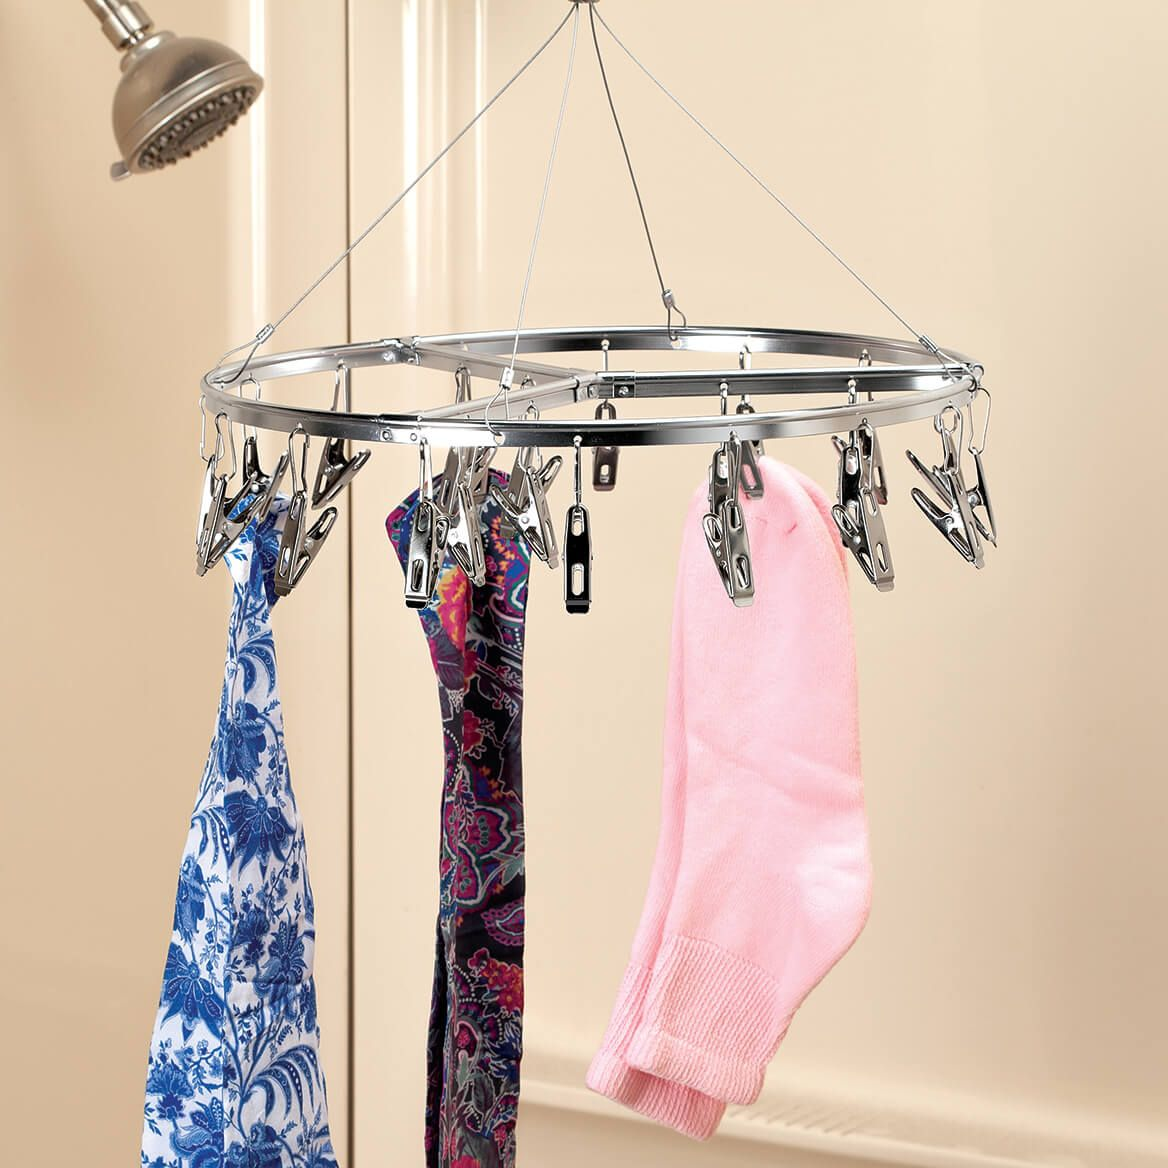 Circular Laundry Hanger with Clips-370265